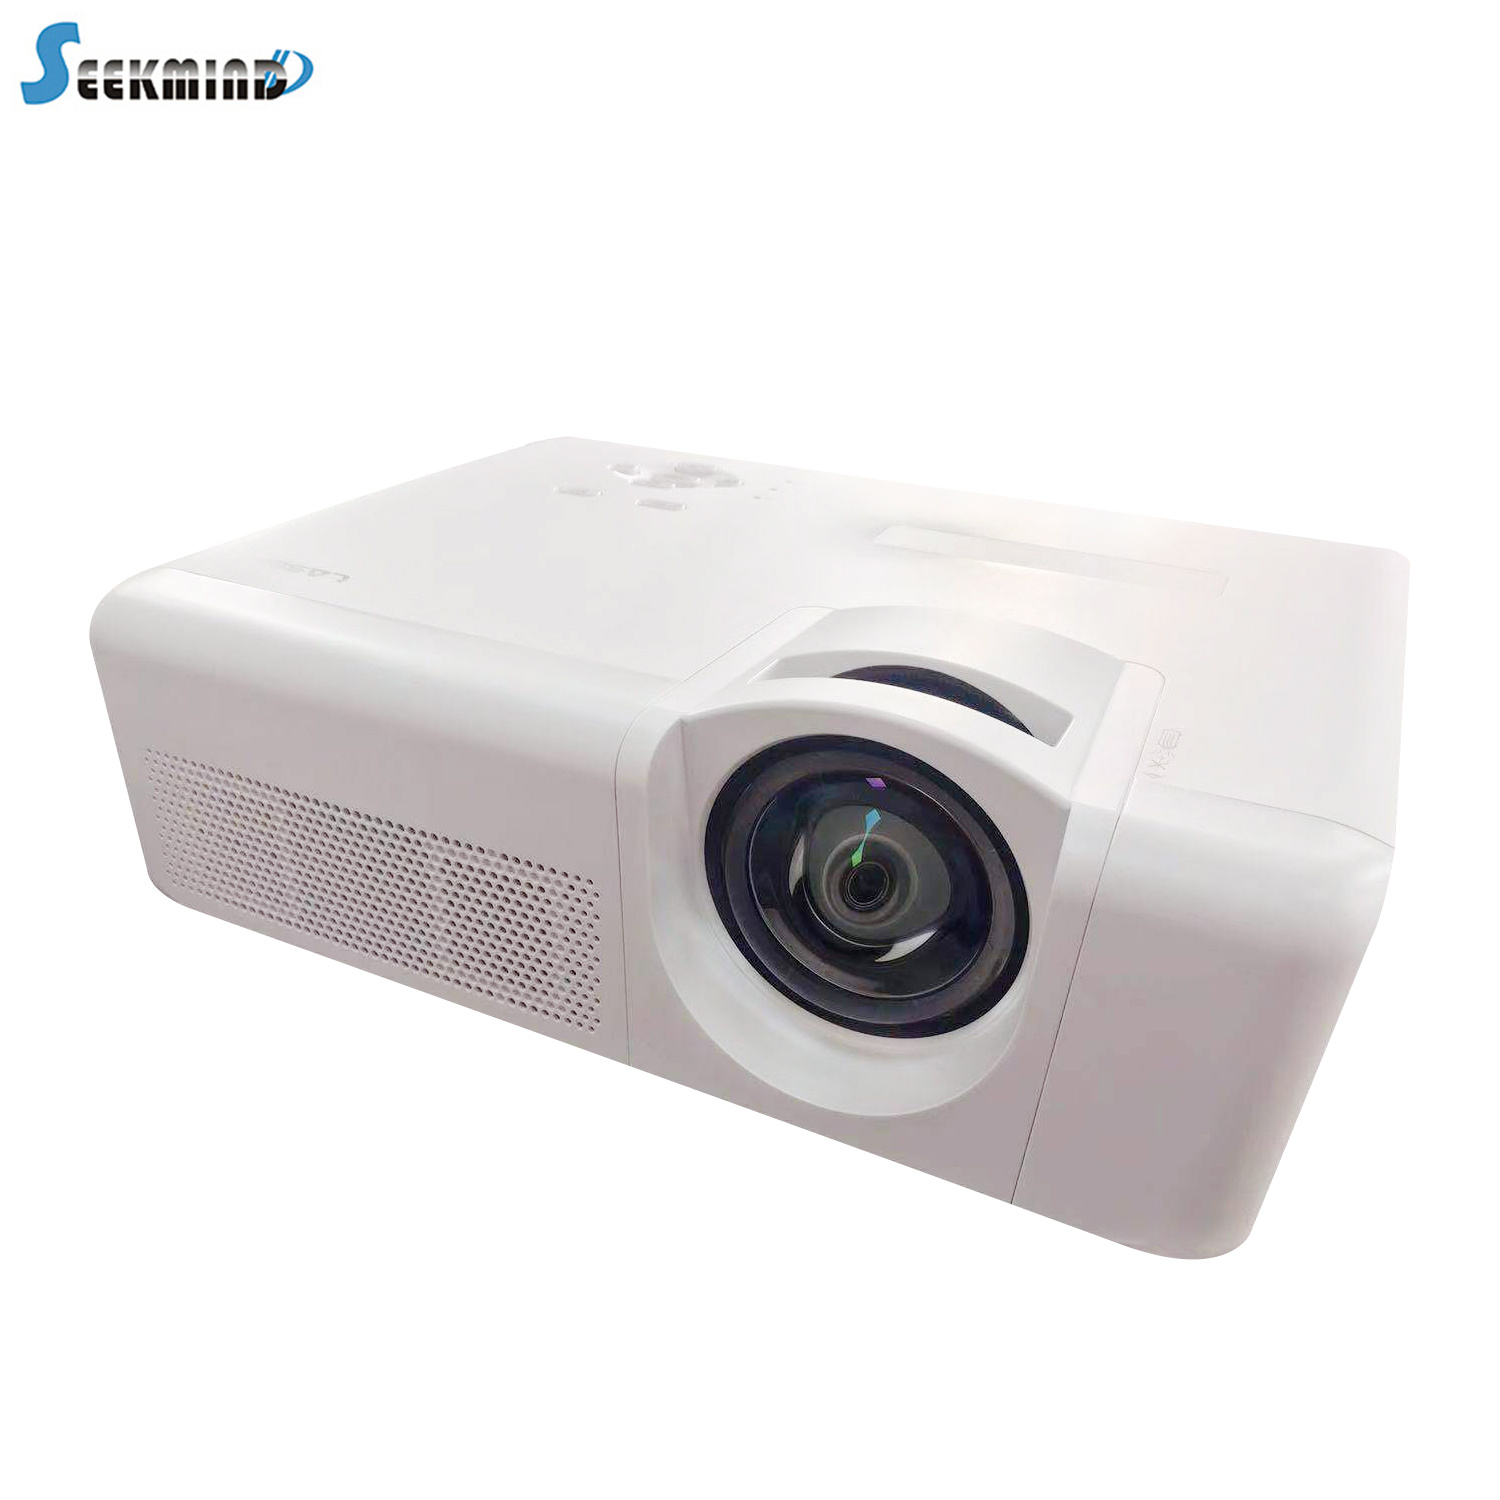 China Factory Price Short Throw DLP 20K Projector   China ...